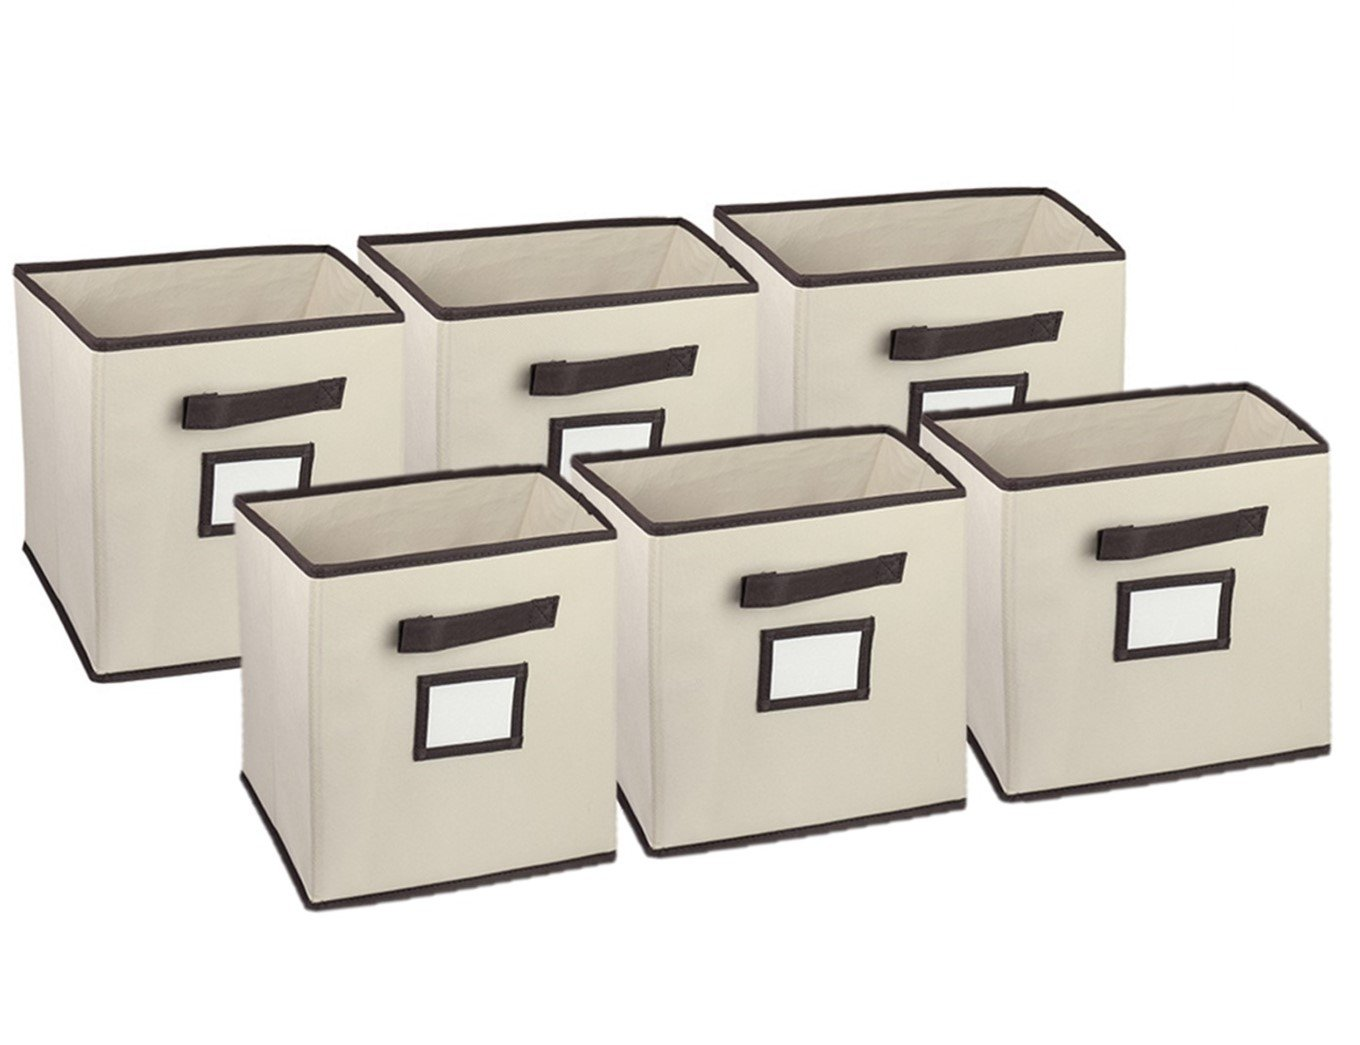 Foldable Storage Cube Closet Organizer, Classic Beige, 6 Pack with Handy Label Window to Make Identifying Contents Easy. Set Includes 6 Collapsible Fabric Cubicle Storage Bins